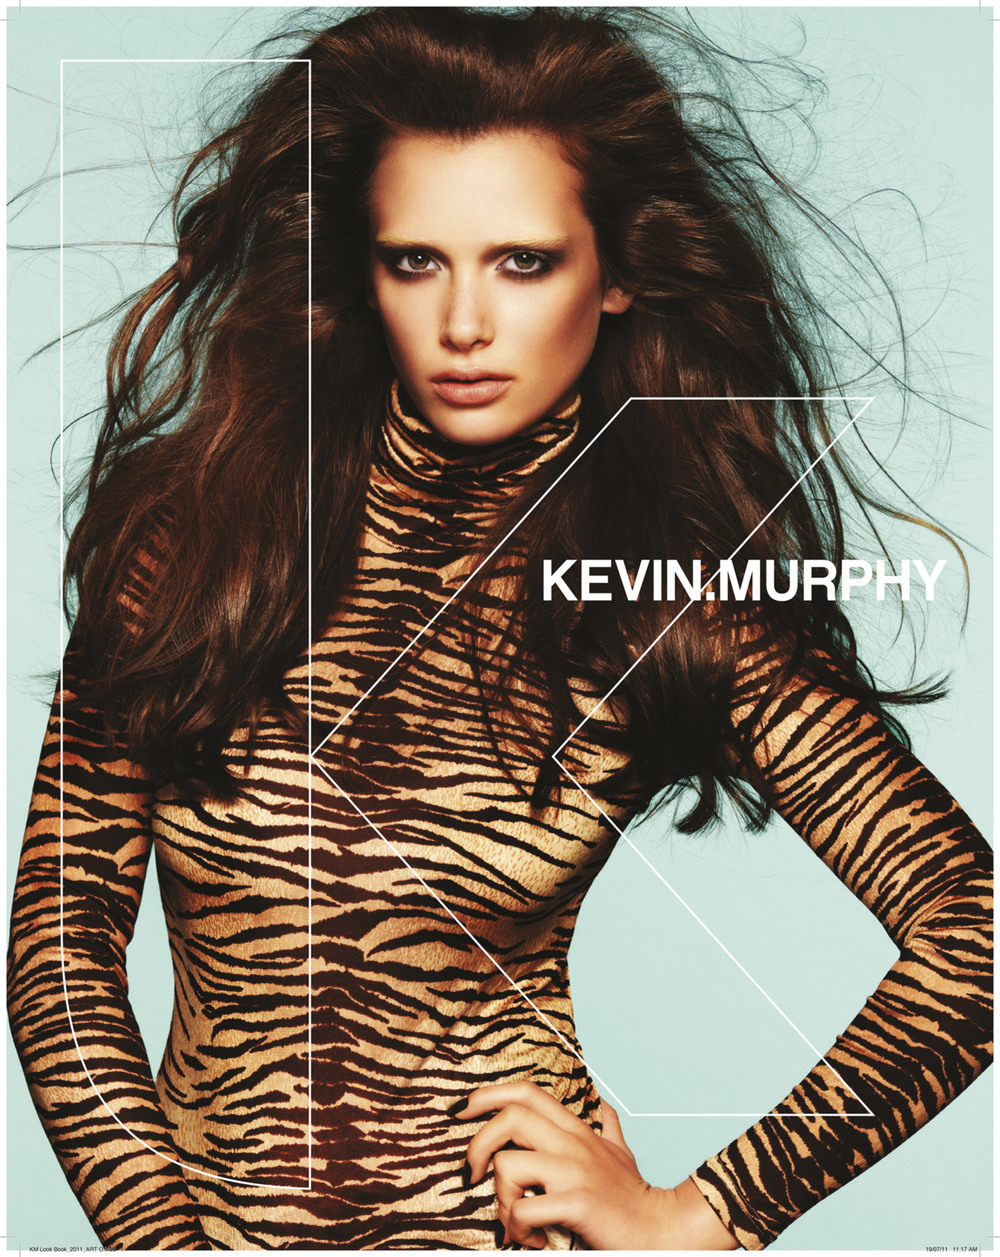 KM-Look-Book_2011_ART-O-1.jpg